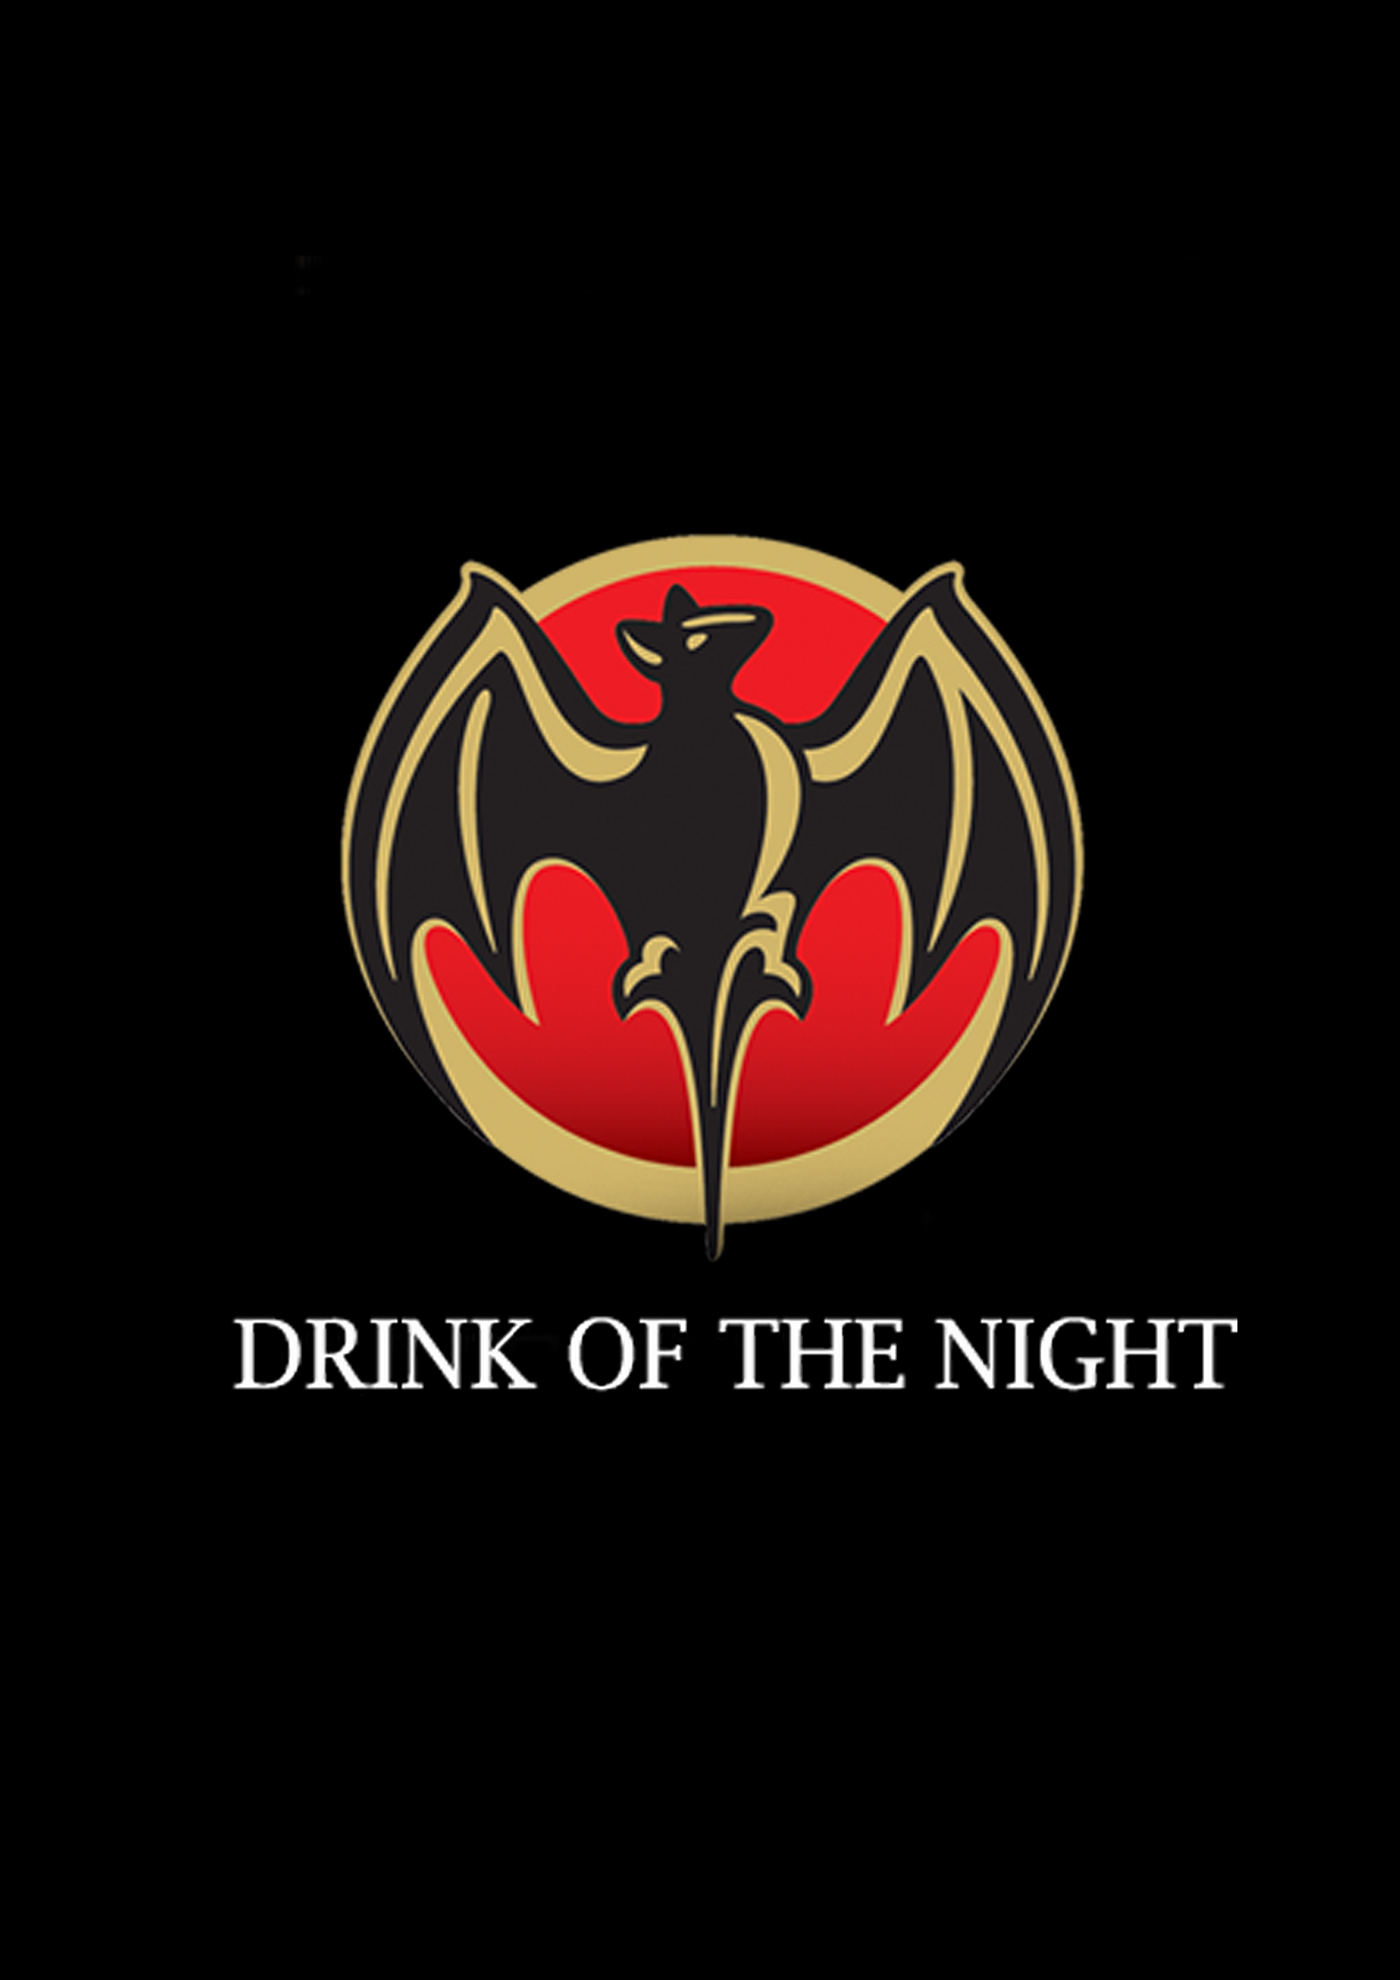 bacardi the drink of the night on behance